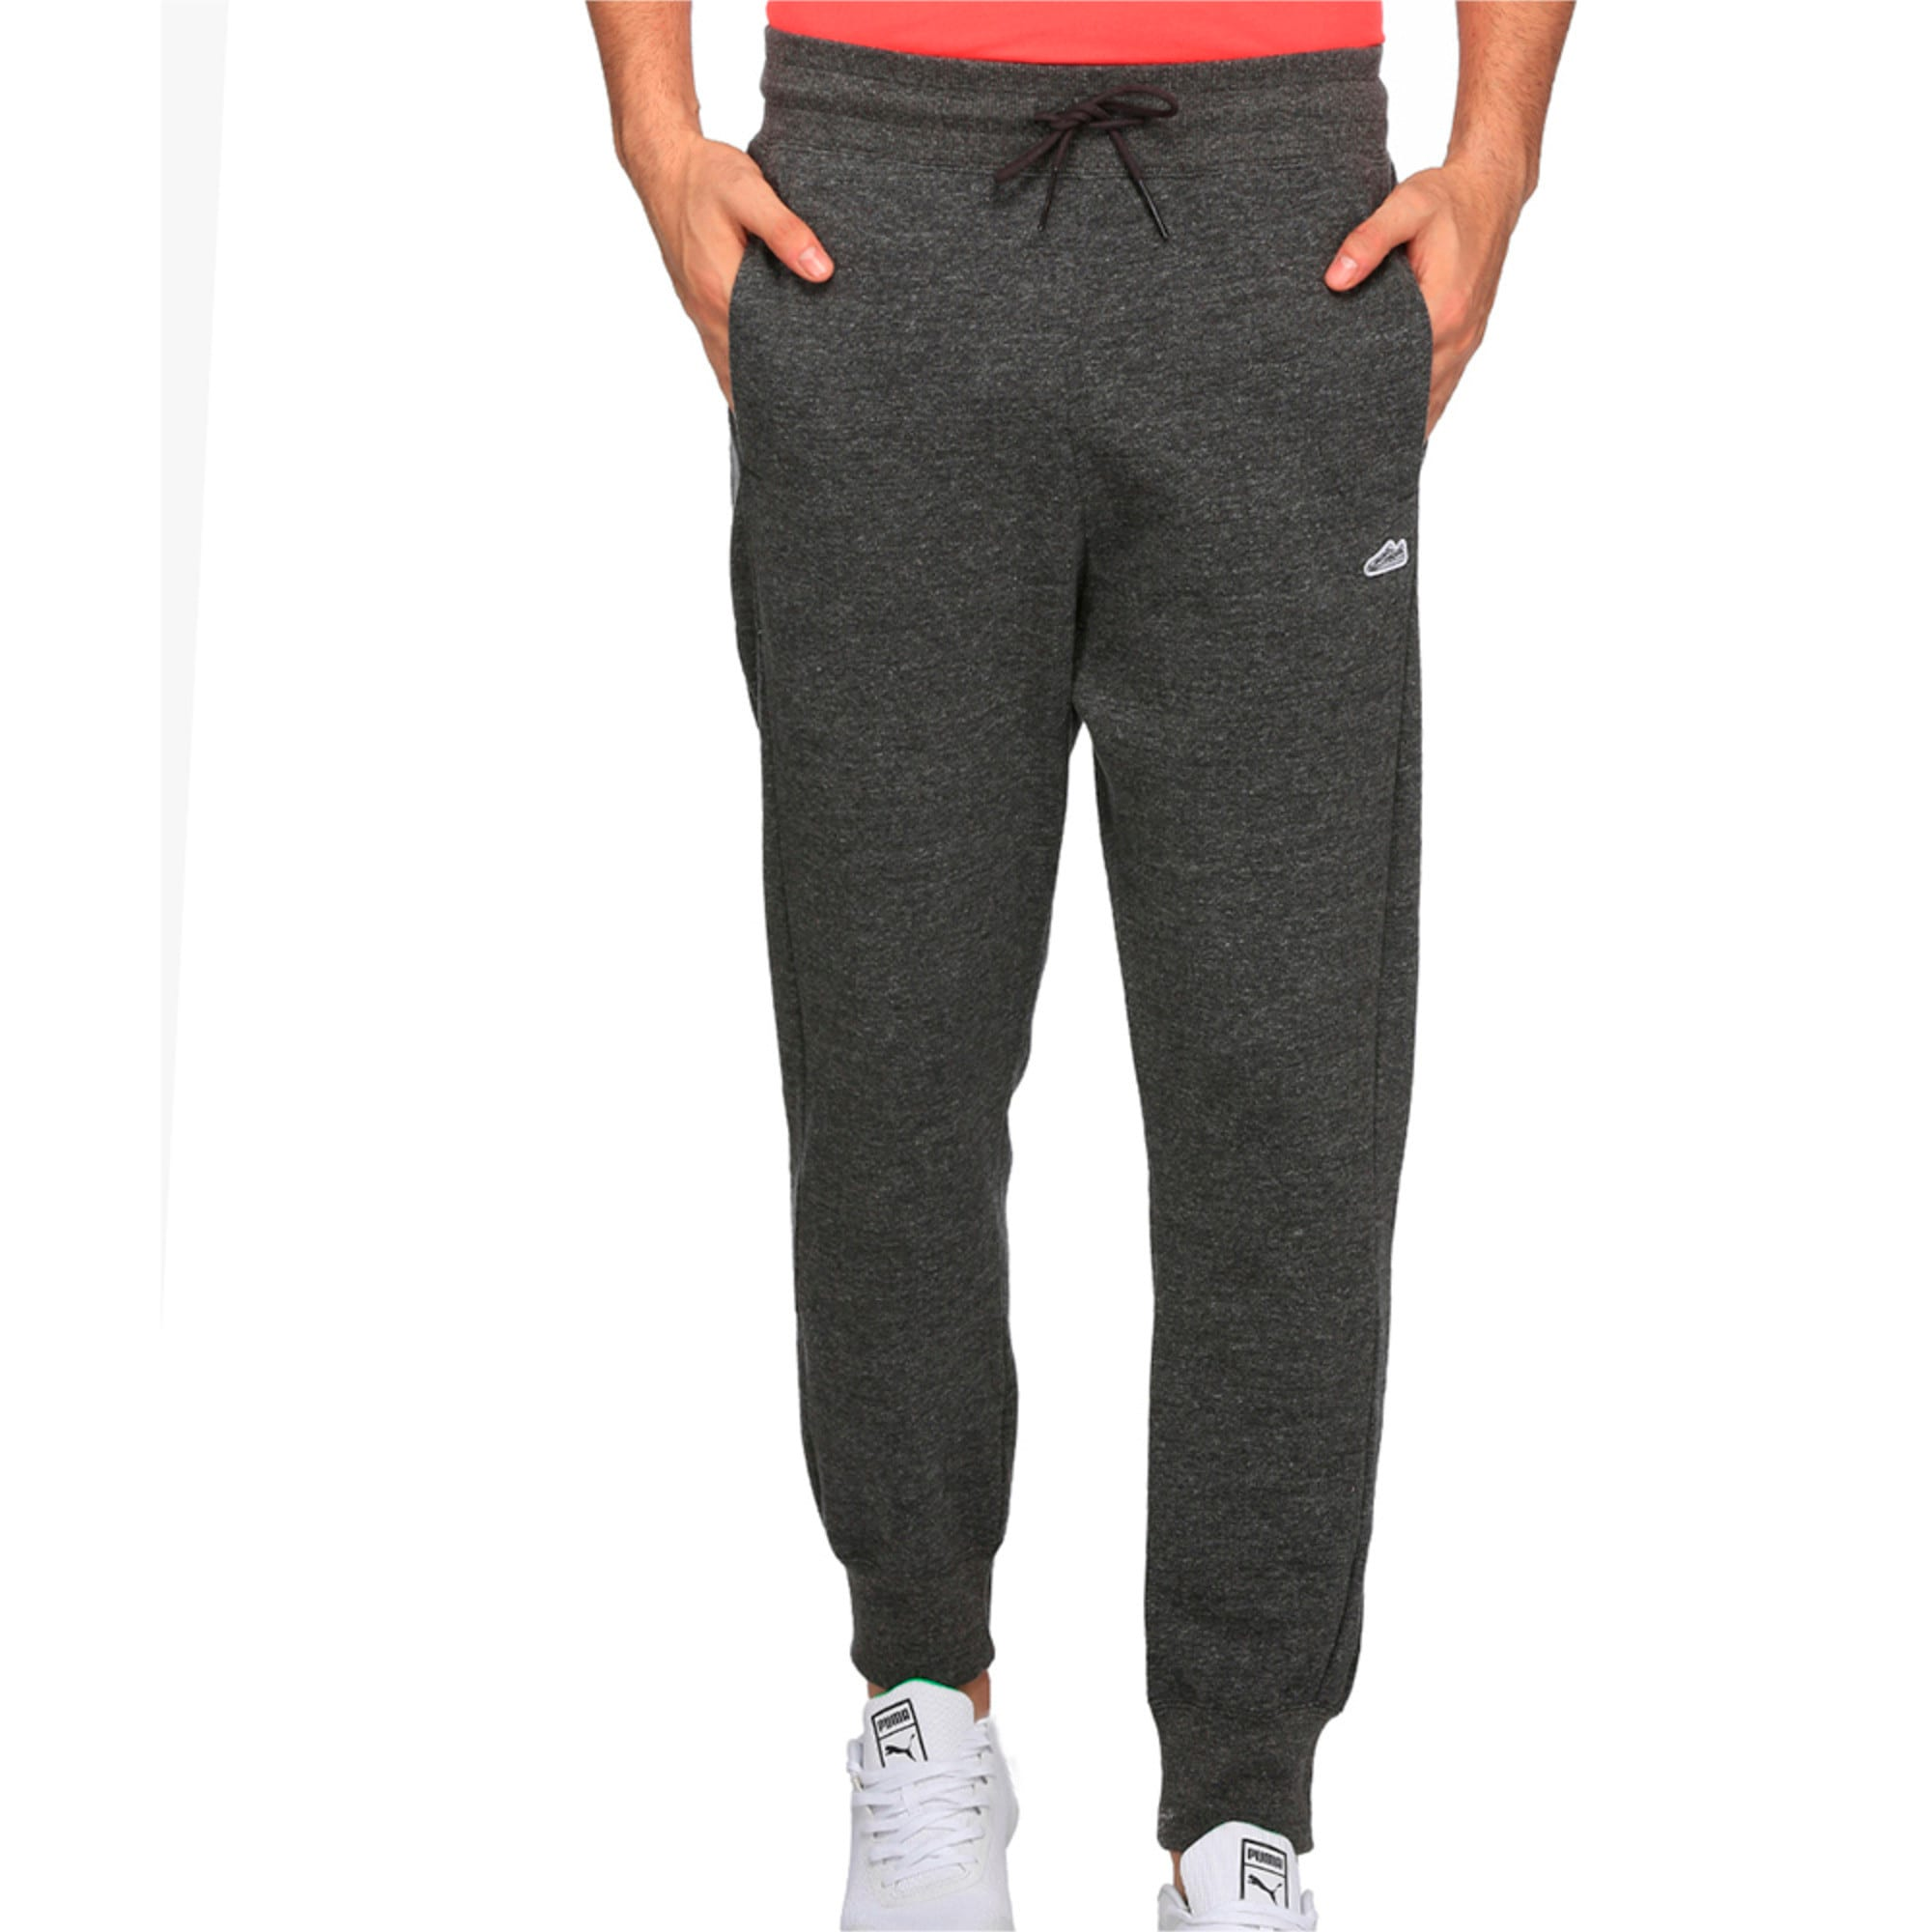 Men's Suede T7 Fleece Sweatpants, Puma Black Heather, large-IND